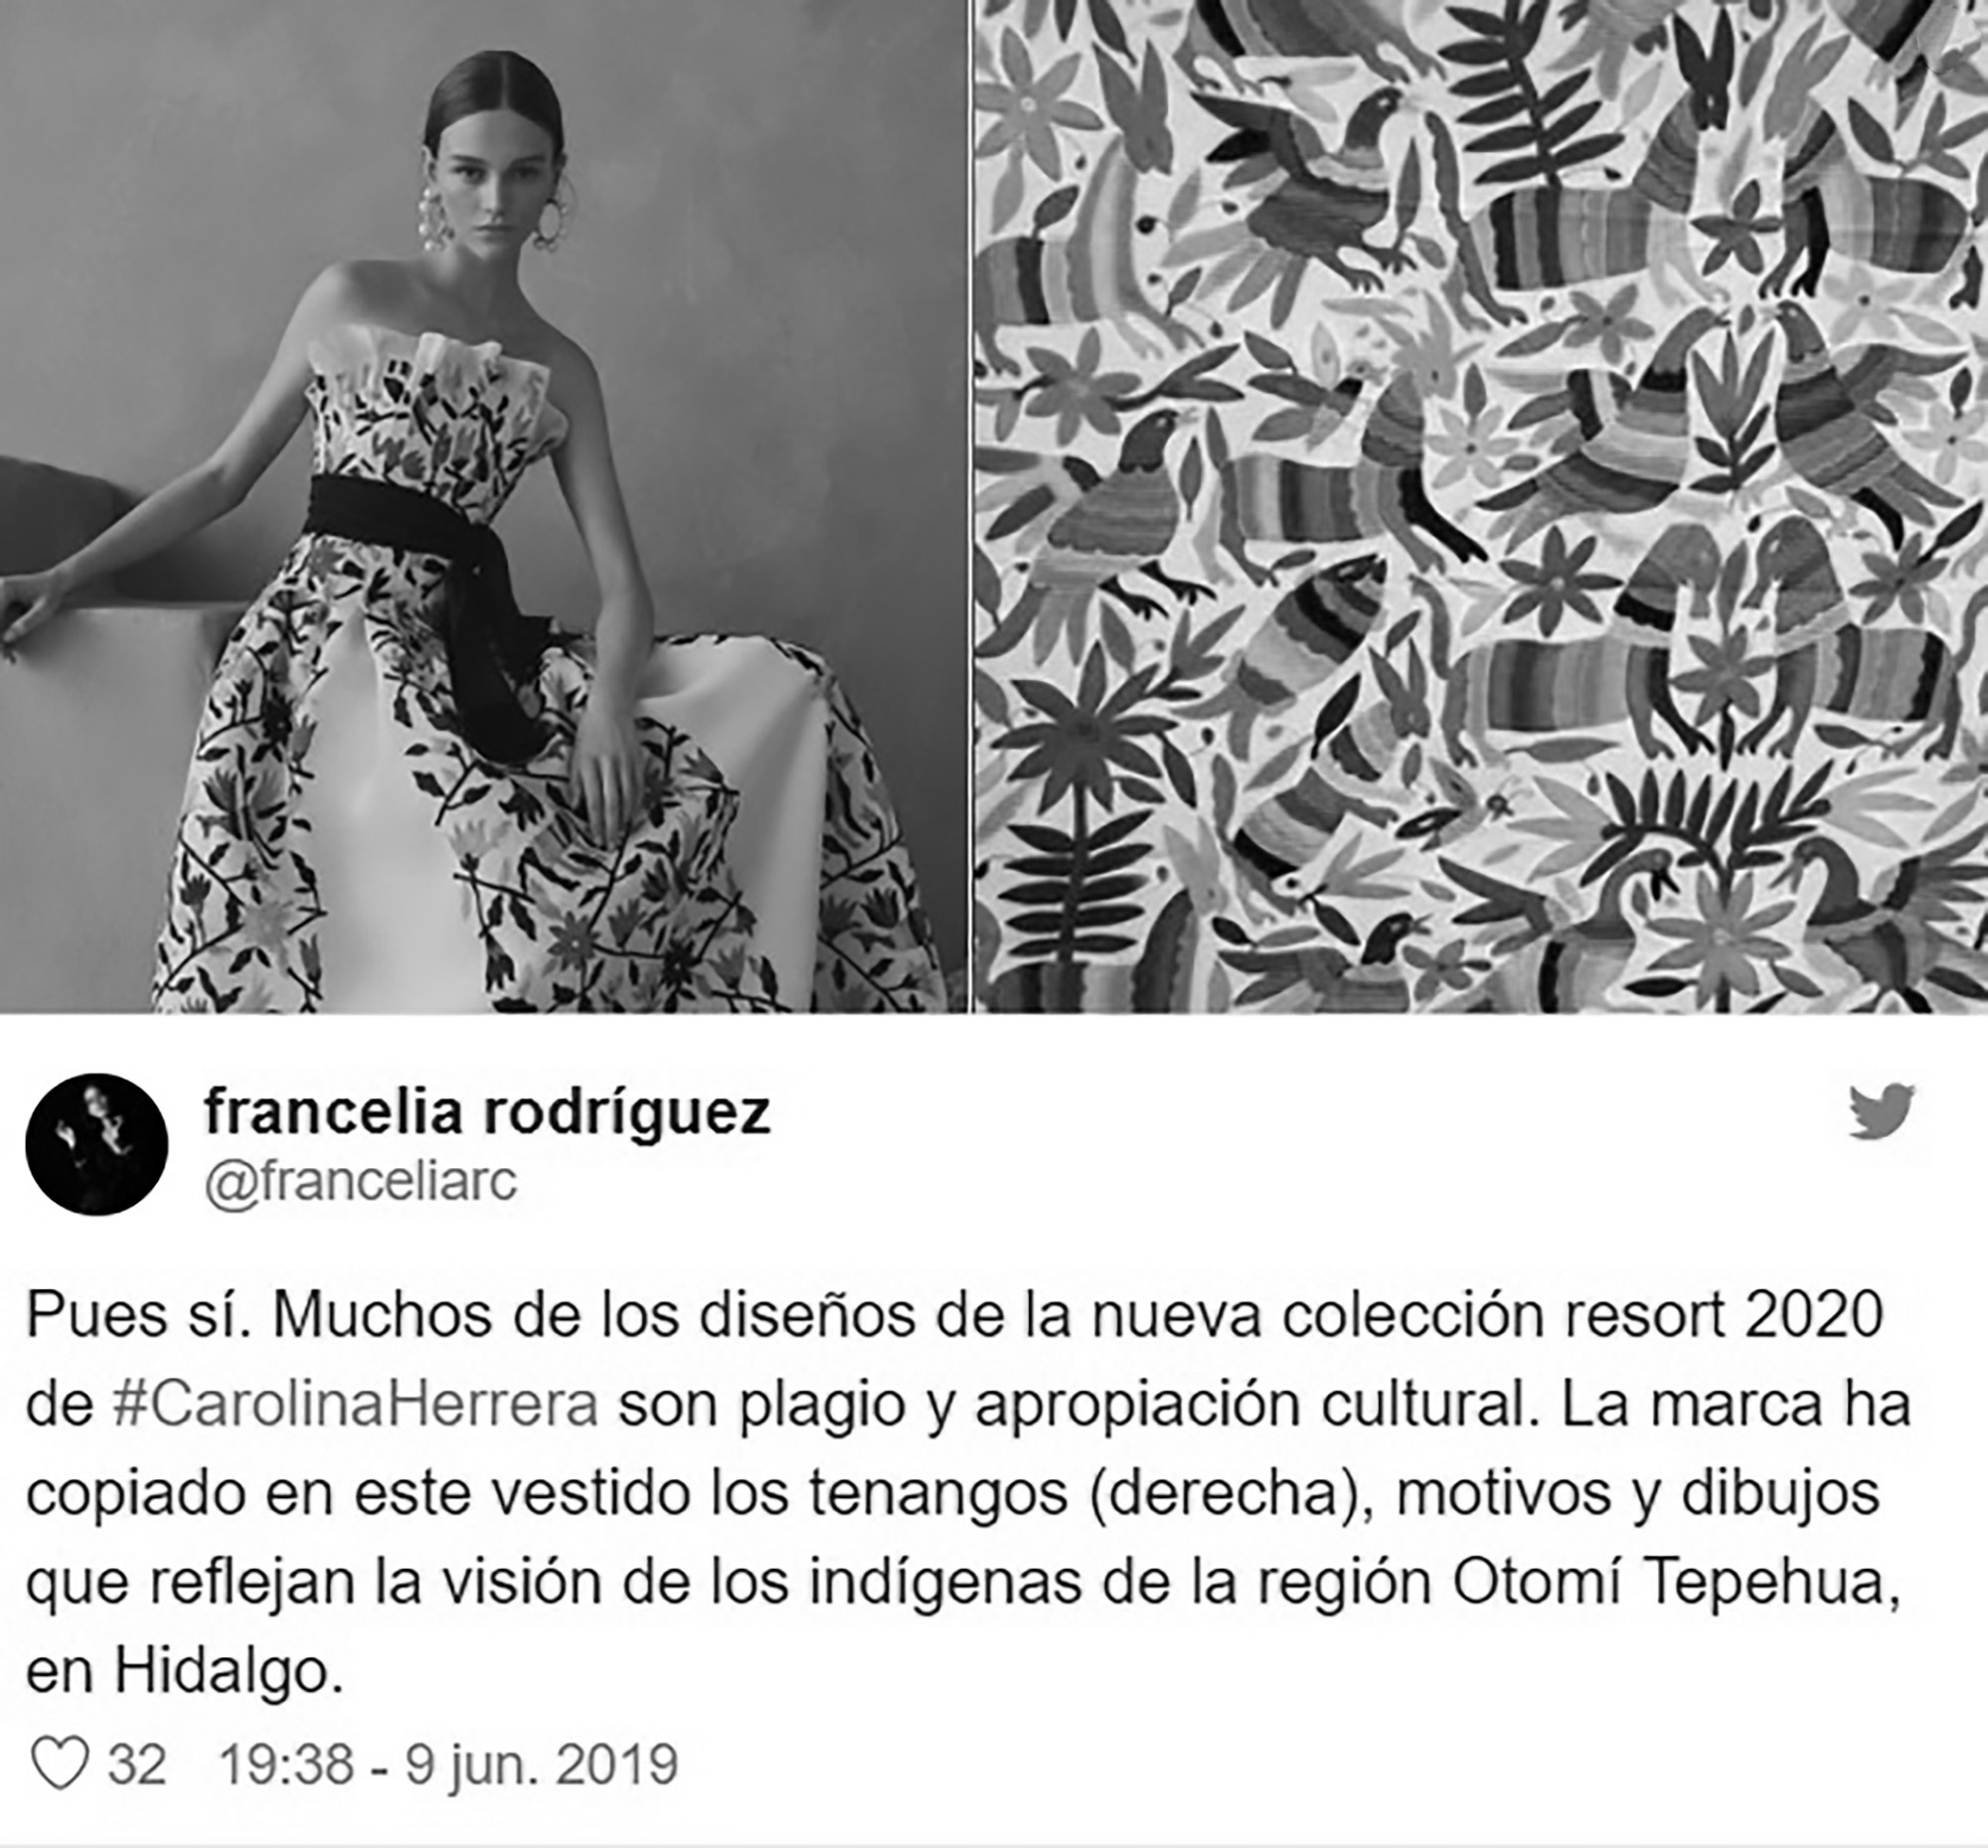 Top Designer Who Dressed Obama Stole Idea From Mexico